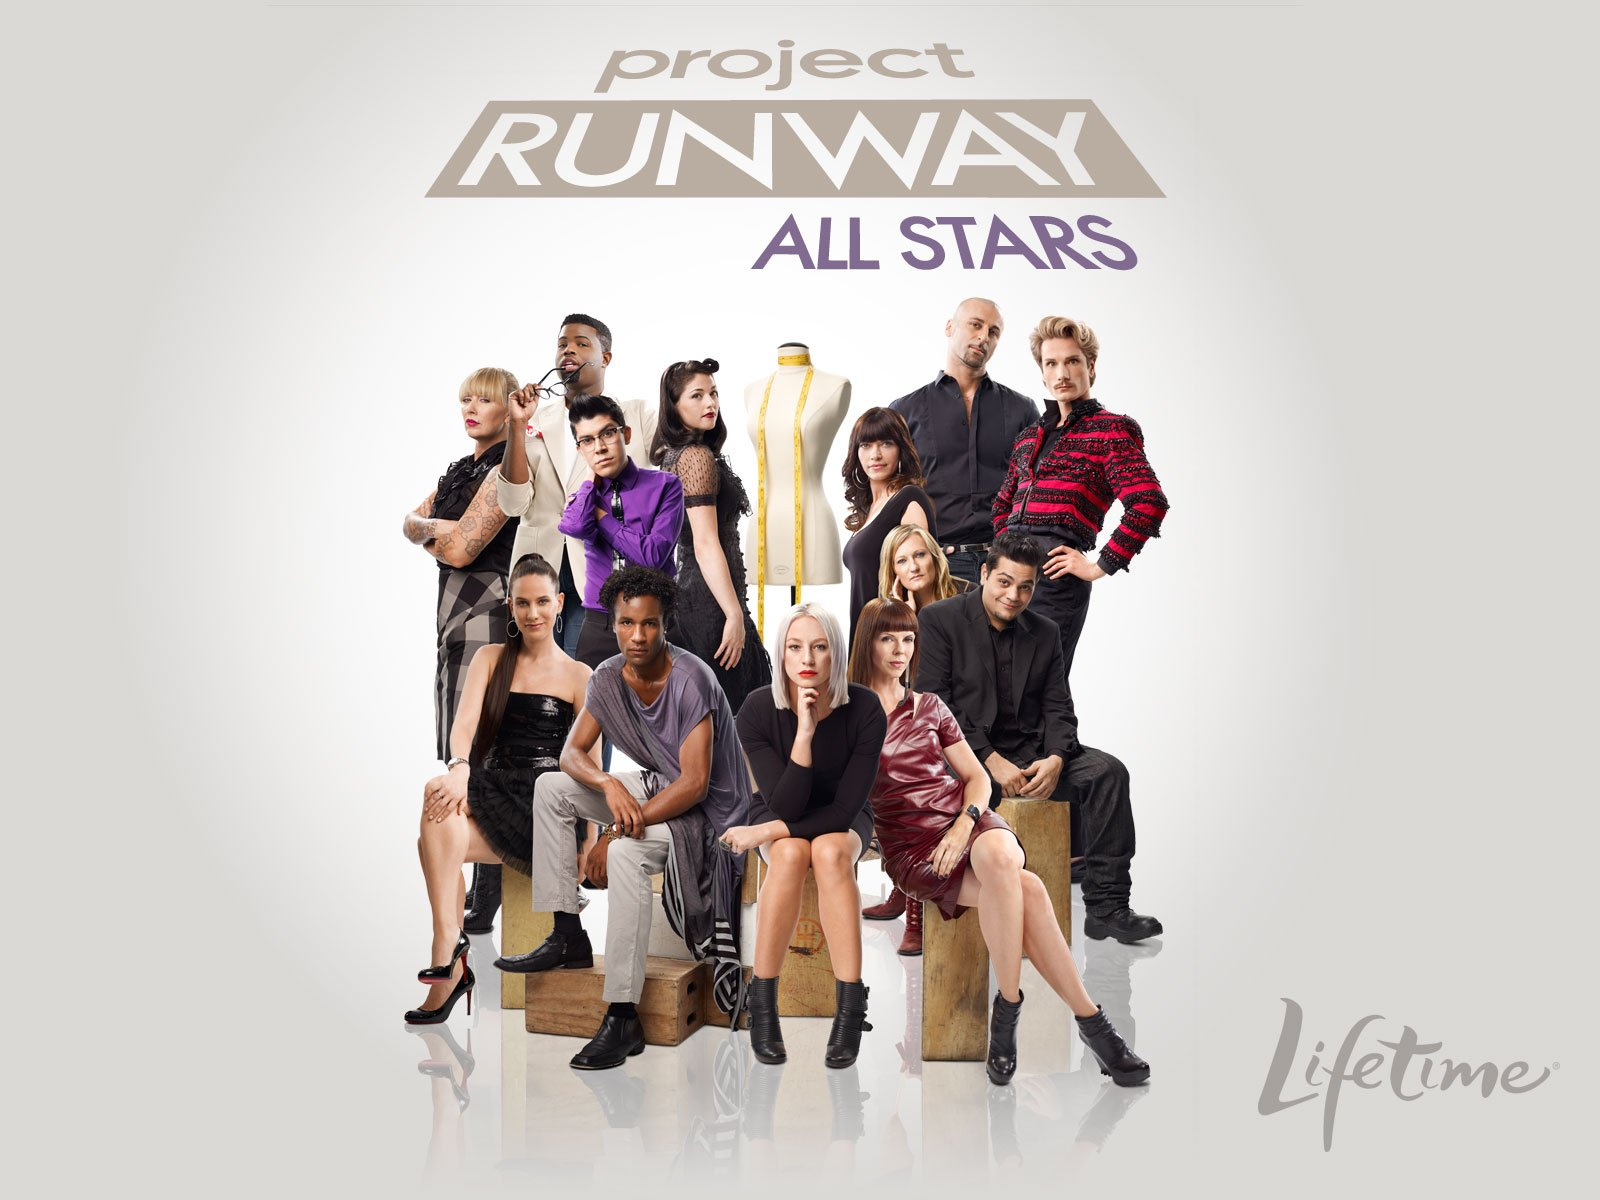 Amazon Project Runway All Stars Season 1 Digital Services LLC